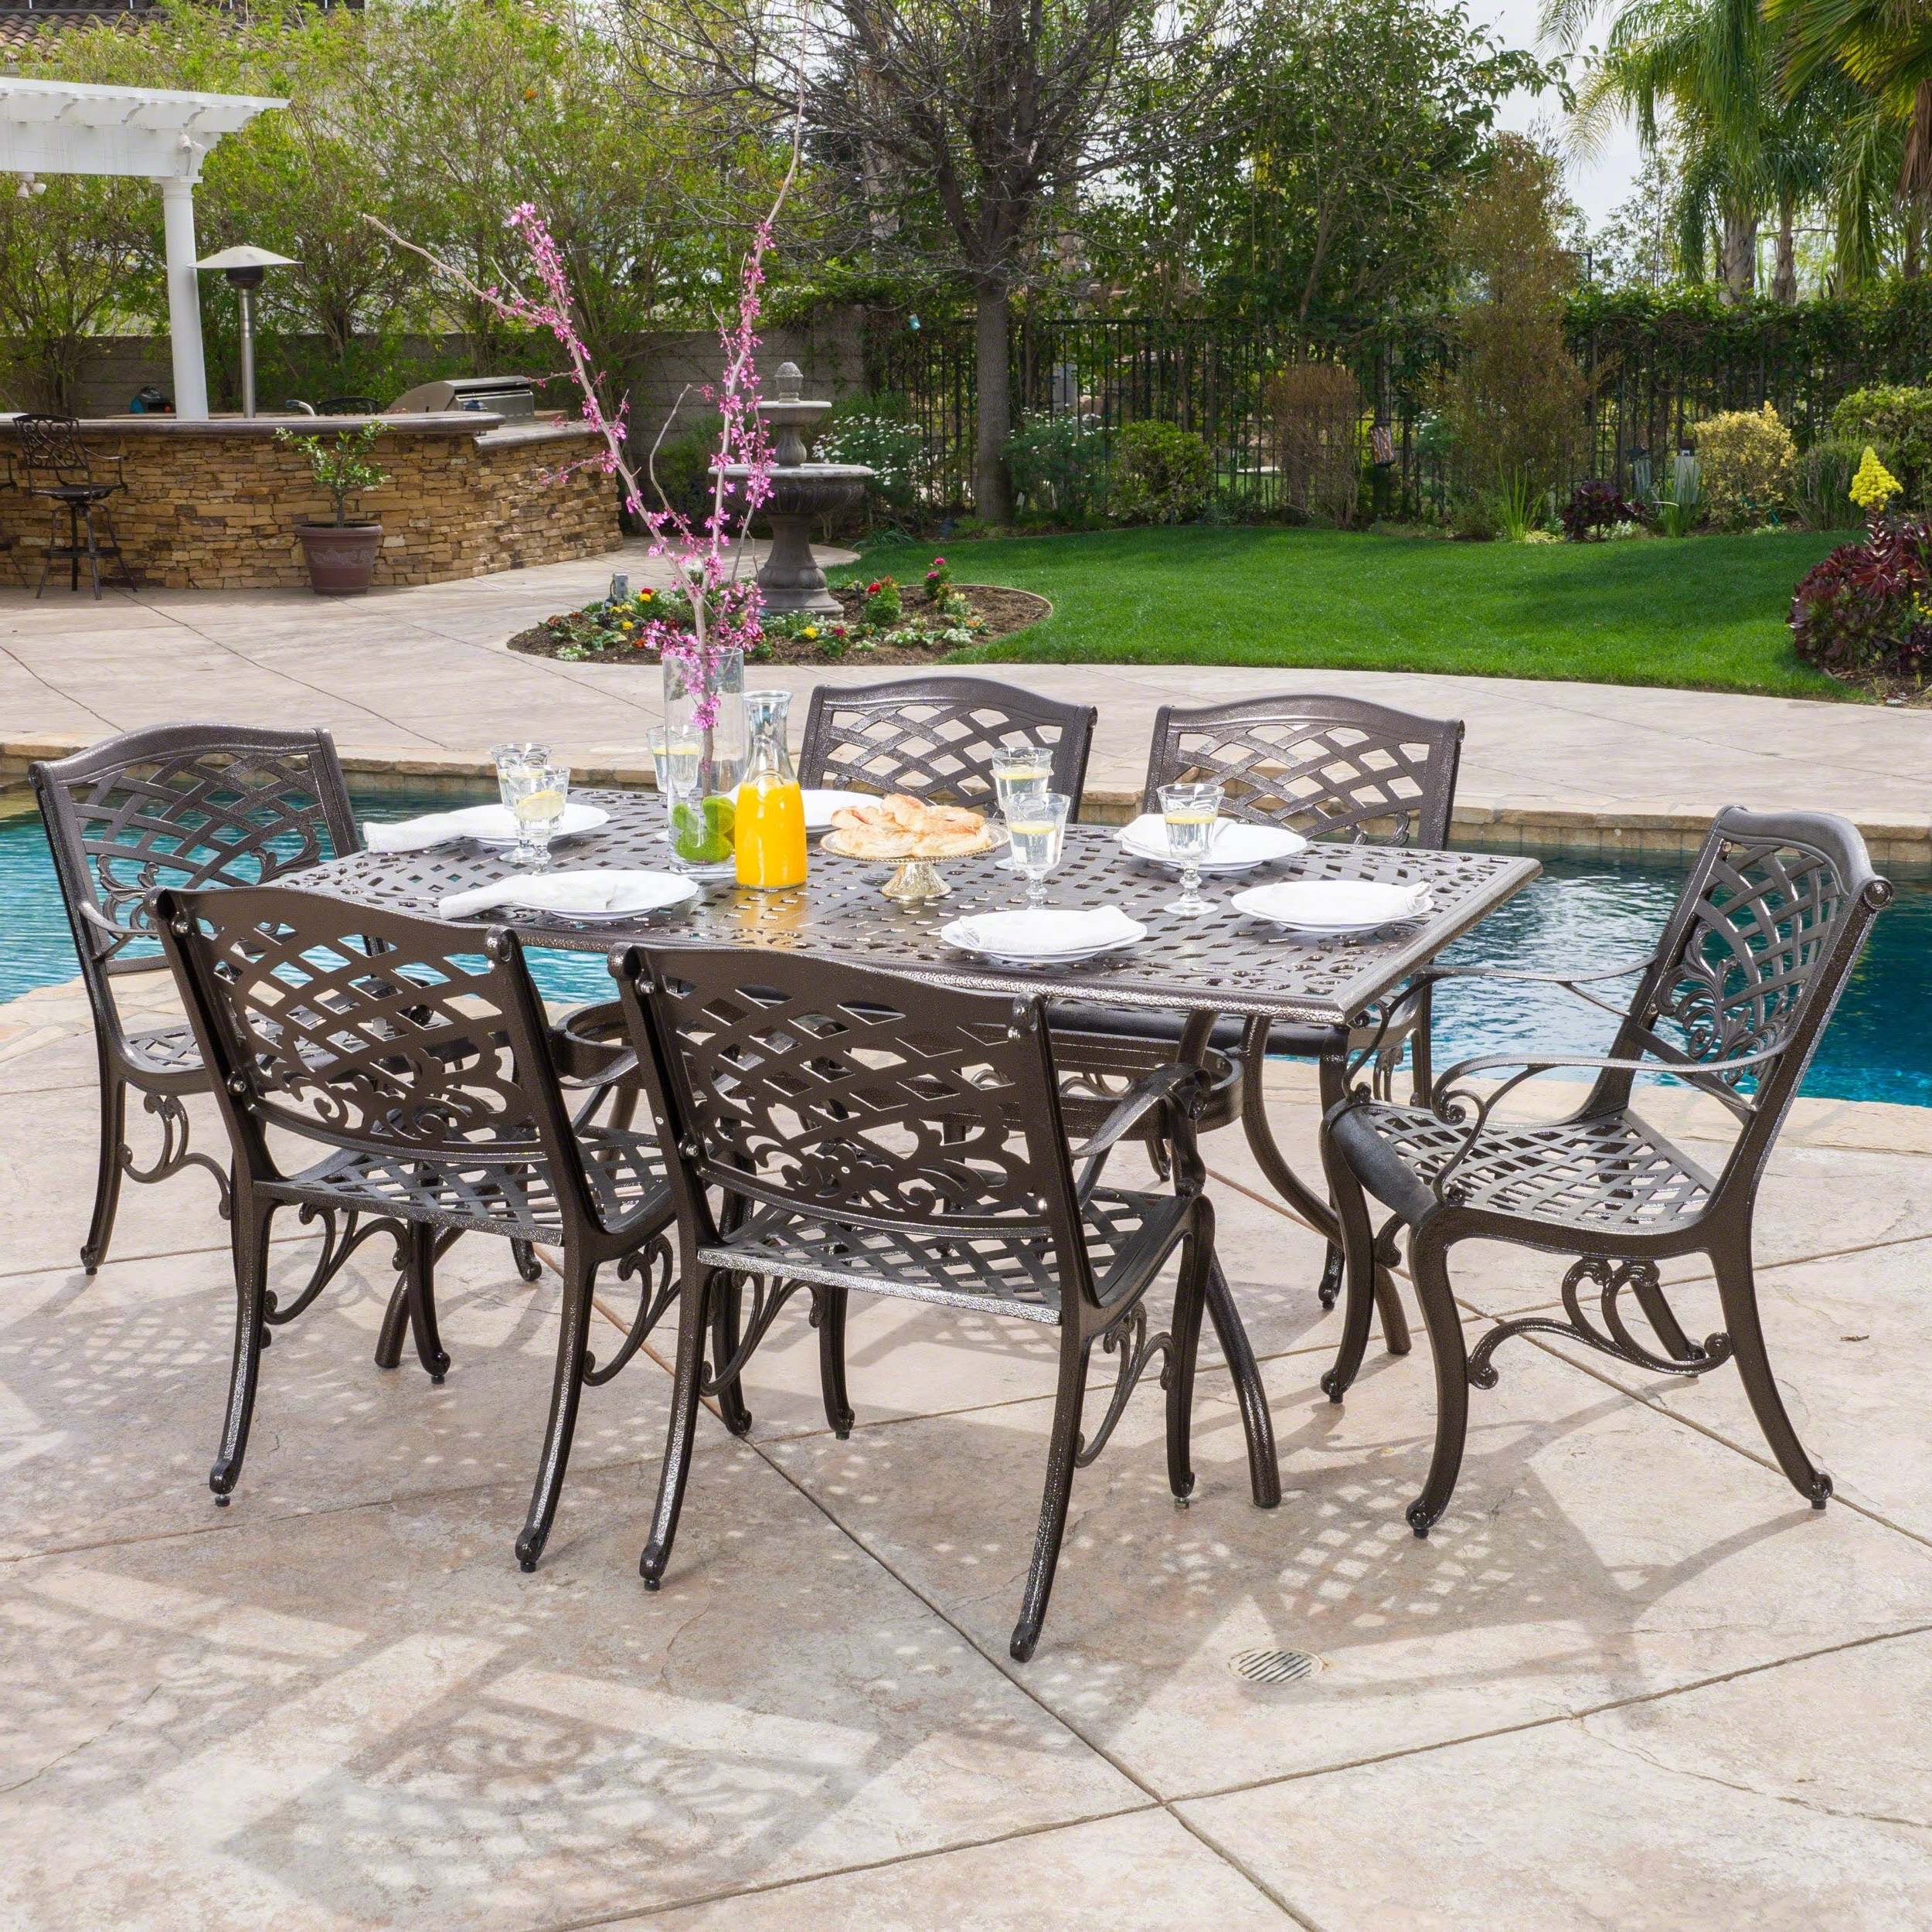 Best Rated In Patio Furniture Sets & Helpful Customer Reviews Regarding Most Popular Dot Patio Conversation Sets (View 2 of 15)